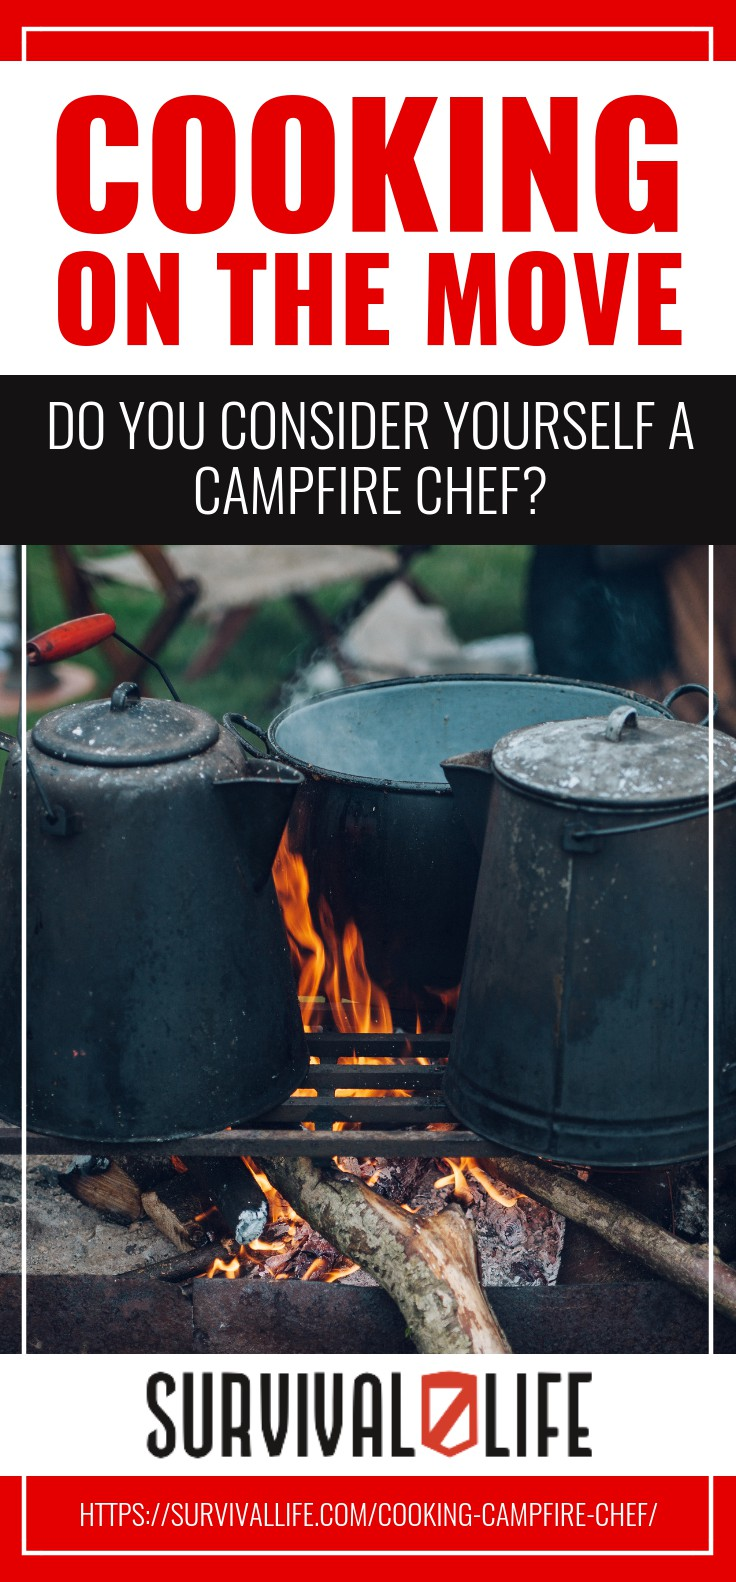 Cooking On The Move; Do You Consider Yourself A Campfire Chef? https://survivallife.com/cooking-campfire-chef/